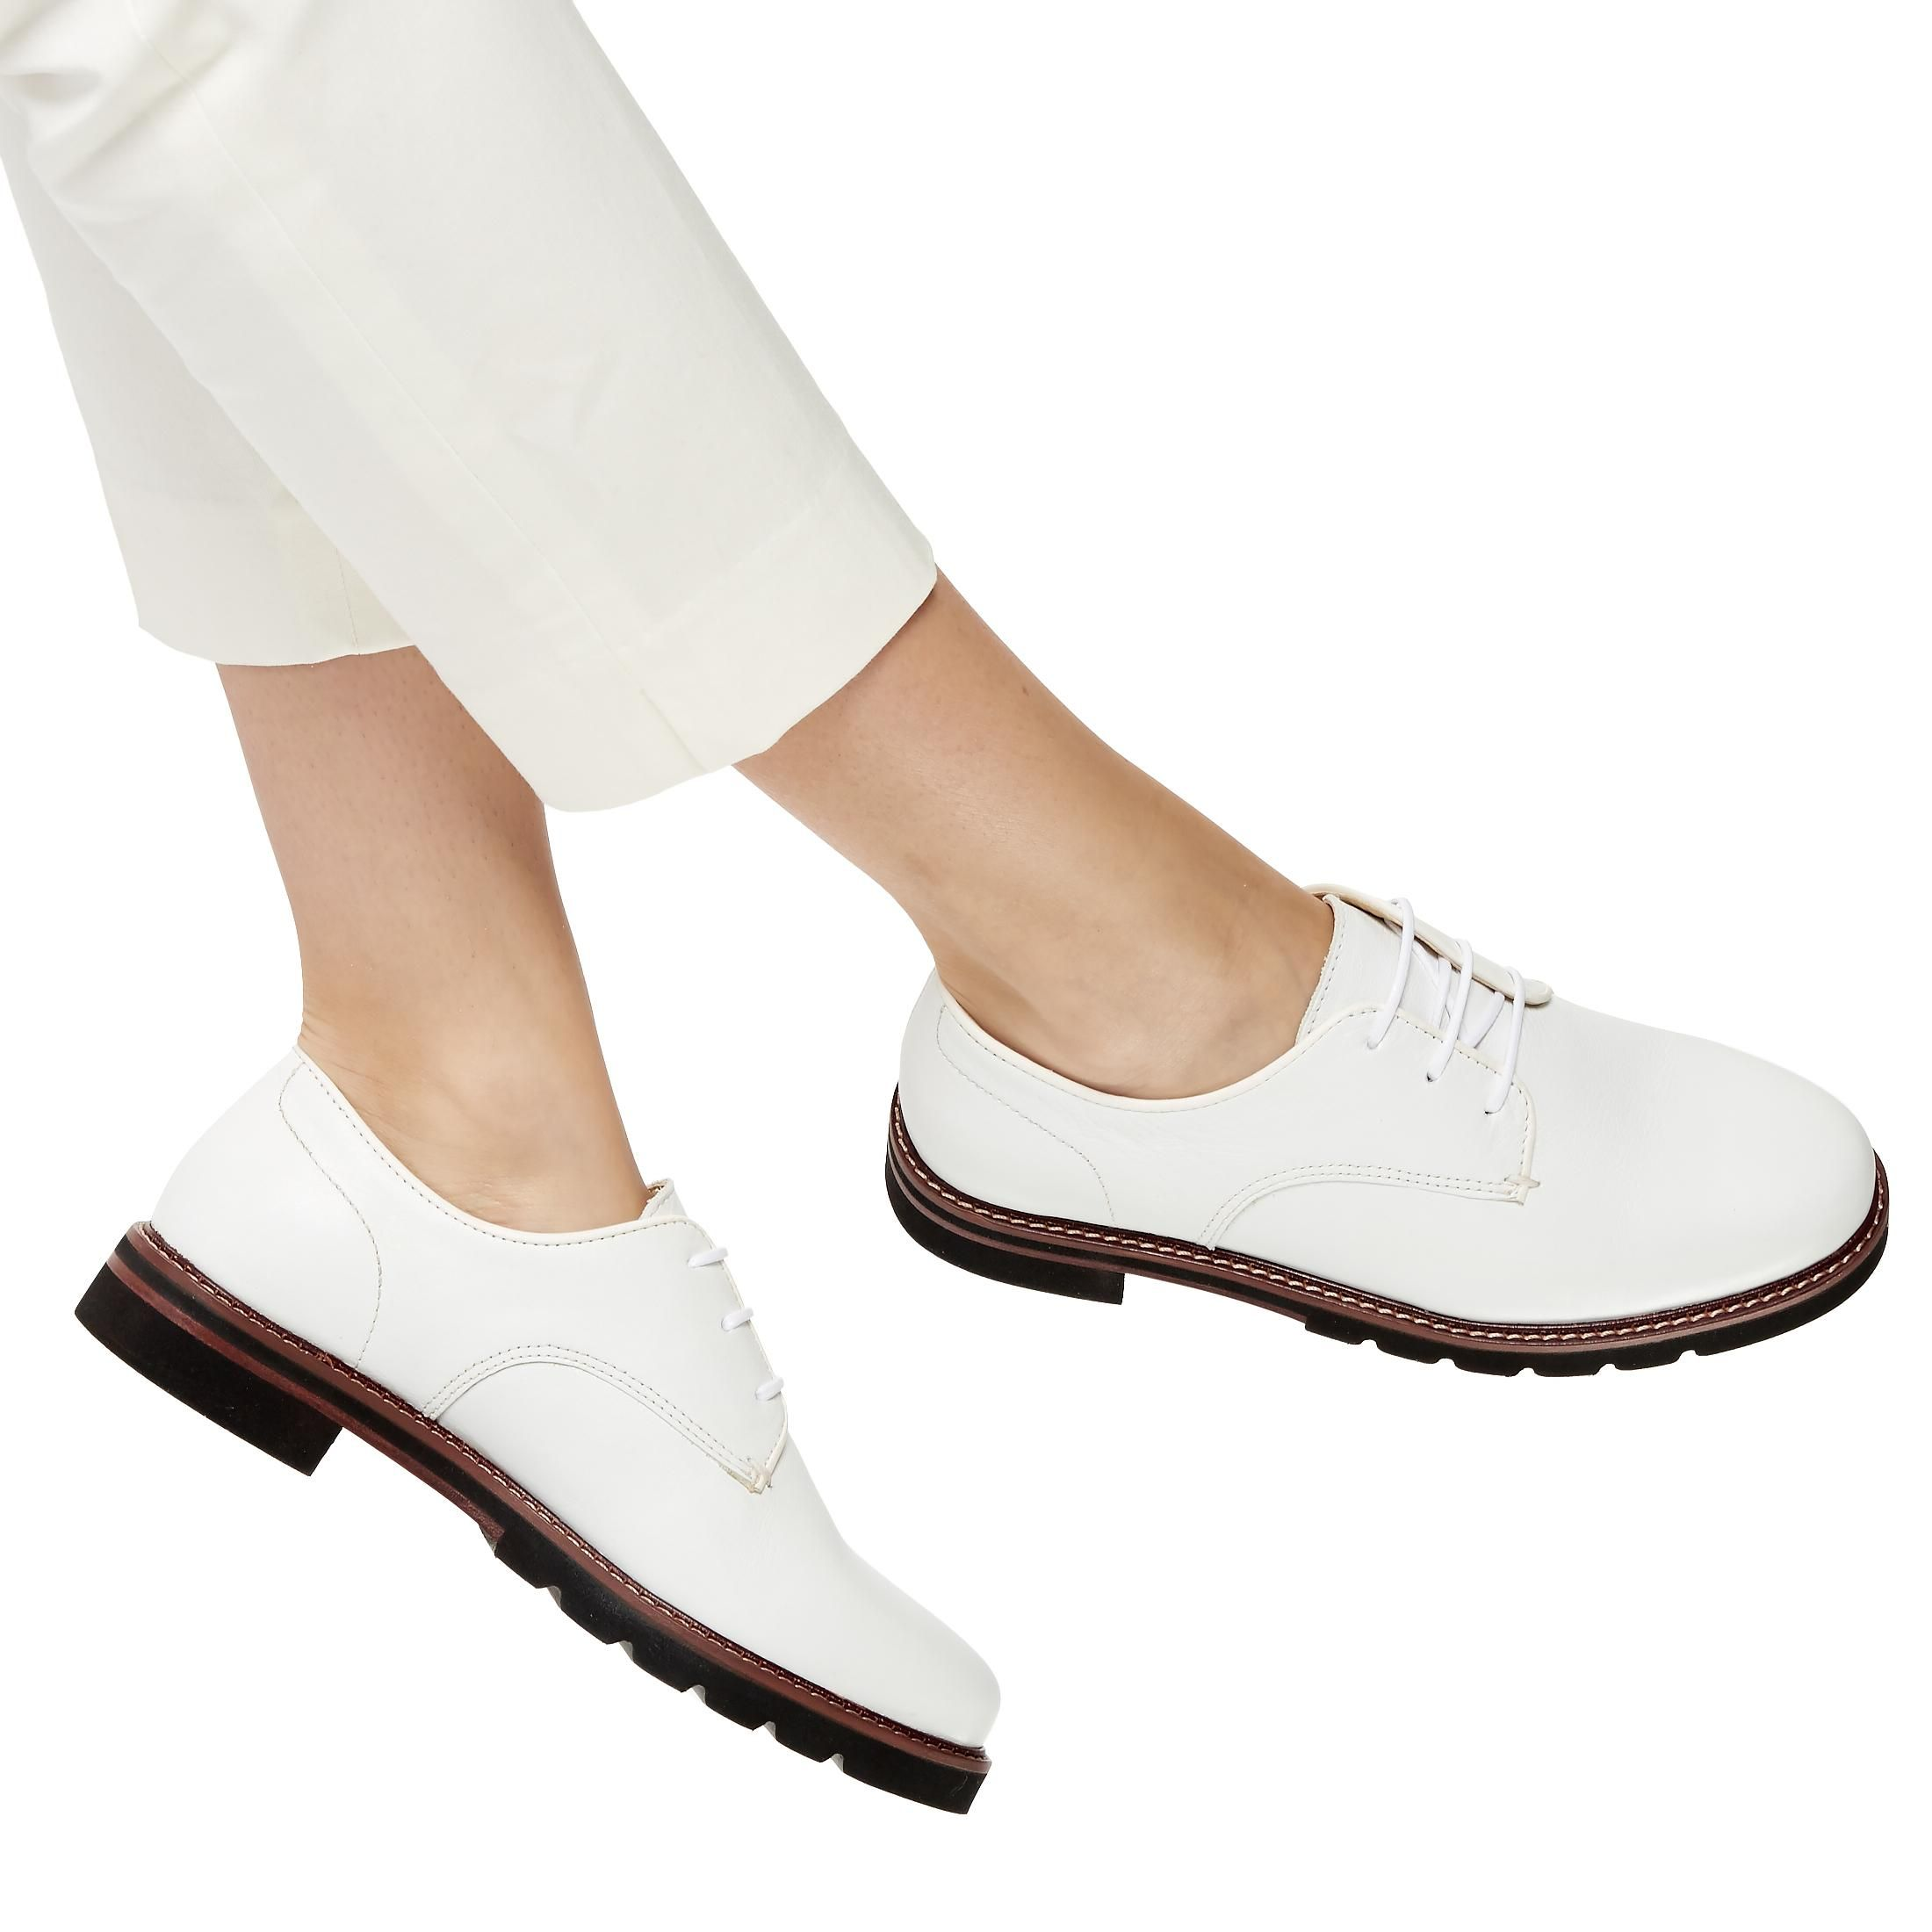 58fc468f2df FINNLY - Chunky Stacked Sole Lace-Up Shoe - white